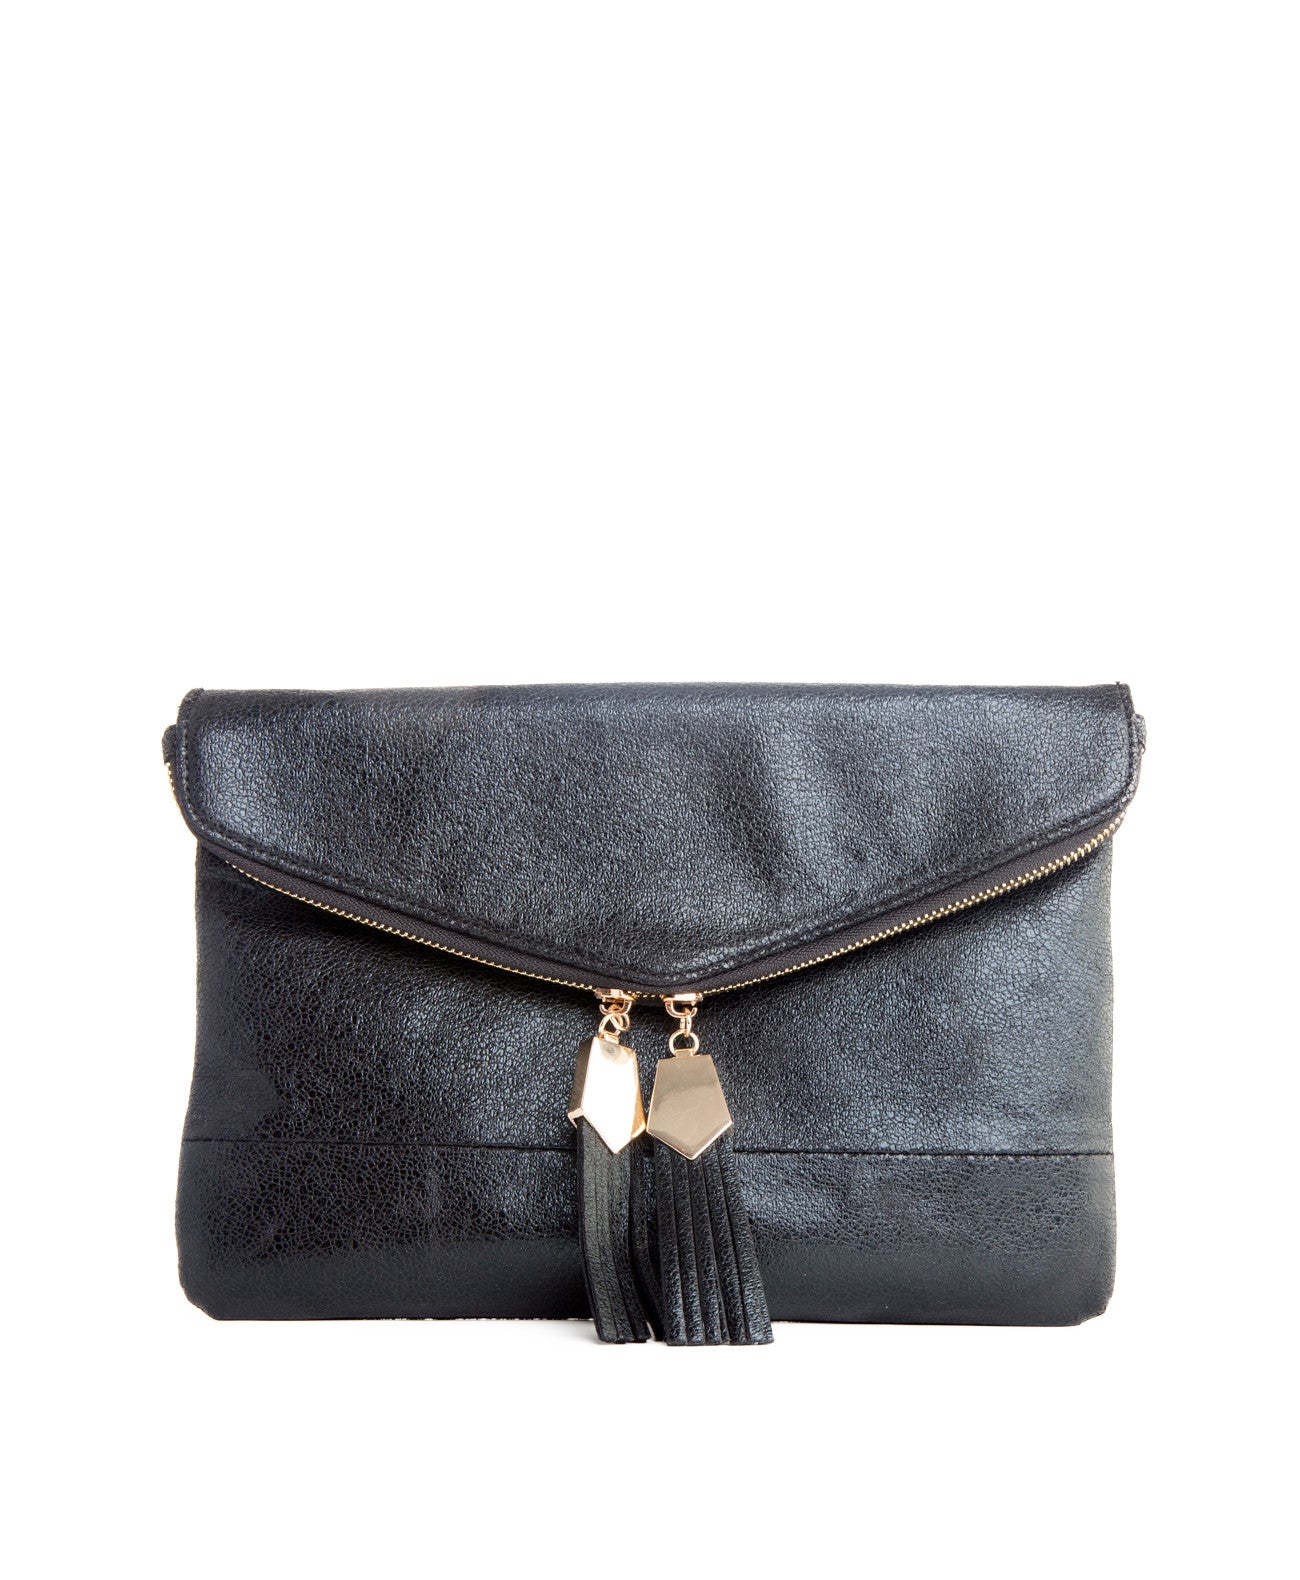 Brooklyn black clutch - Koko & Palenki - 1